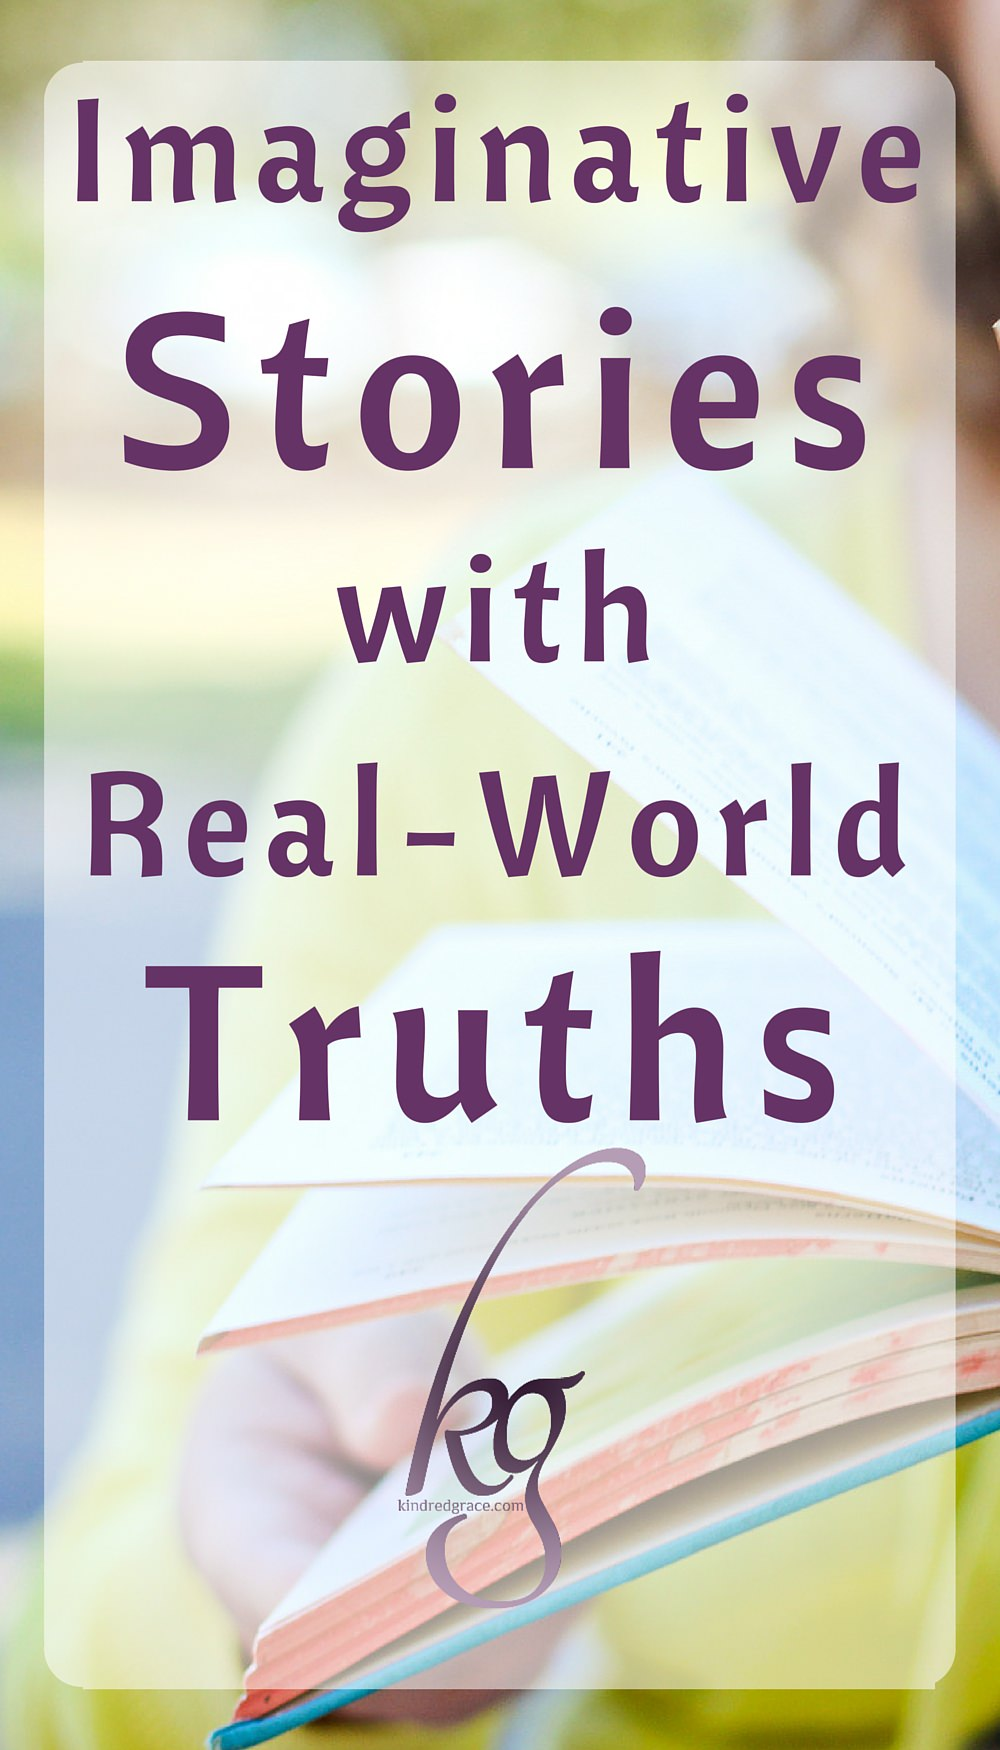 Imaginative Stories with Real-World Truths via @KindredGrace